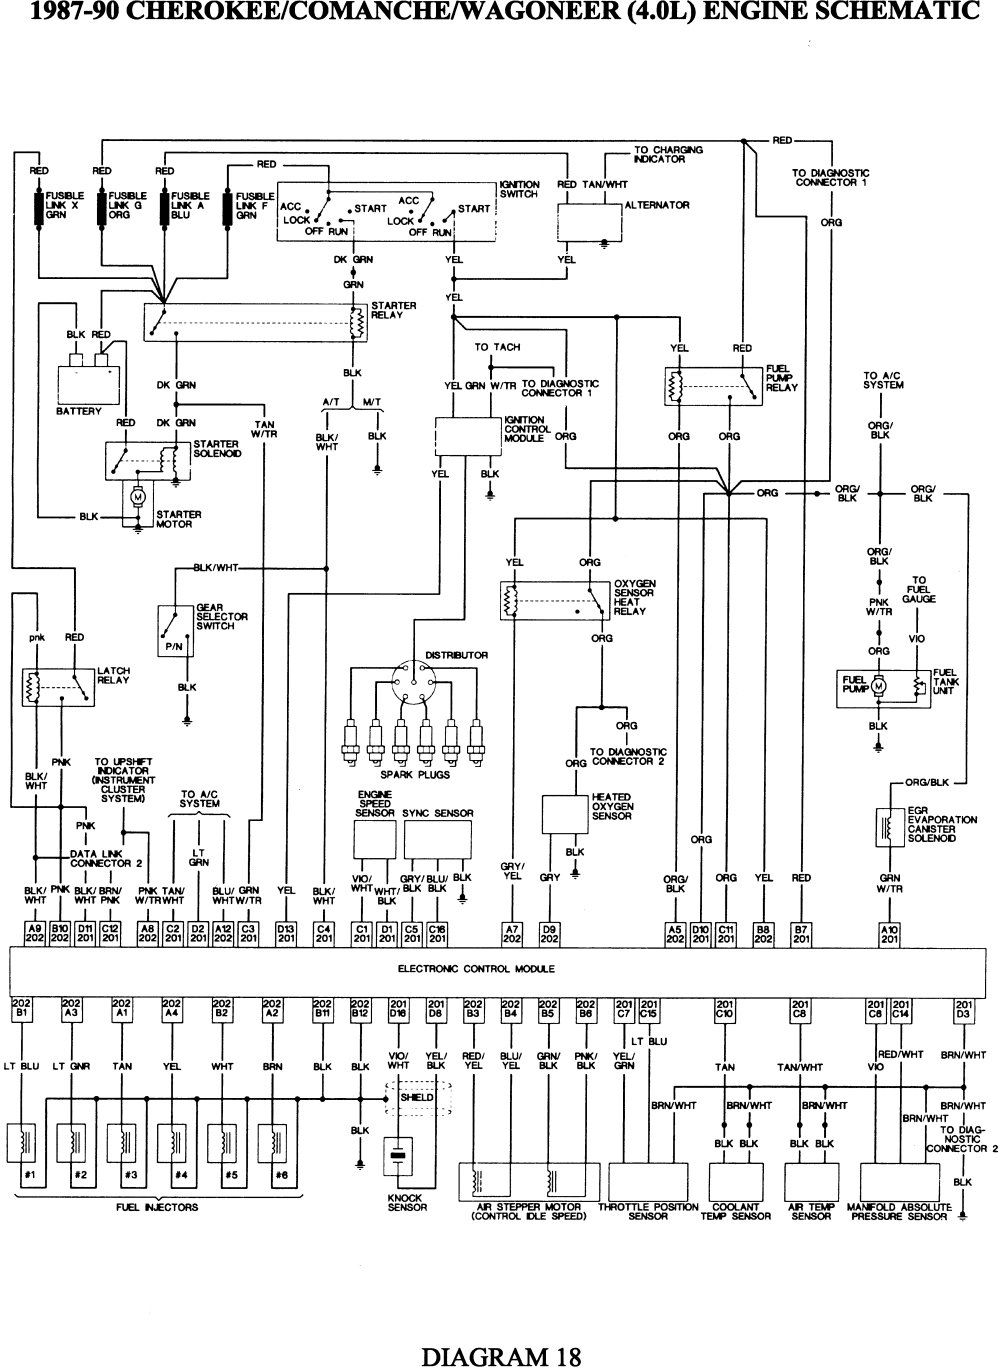 97 jeep wiring diagram wiring diagram expert 97 jeep cherokee transmission wiring diagram 97 jeep wiring diagram [ 1000 x 1369 Pixel ]